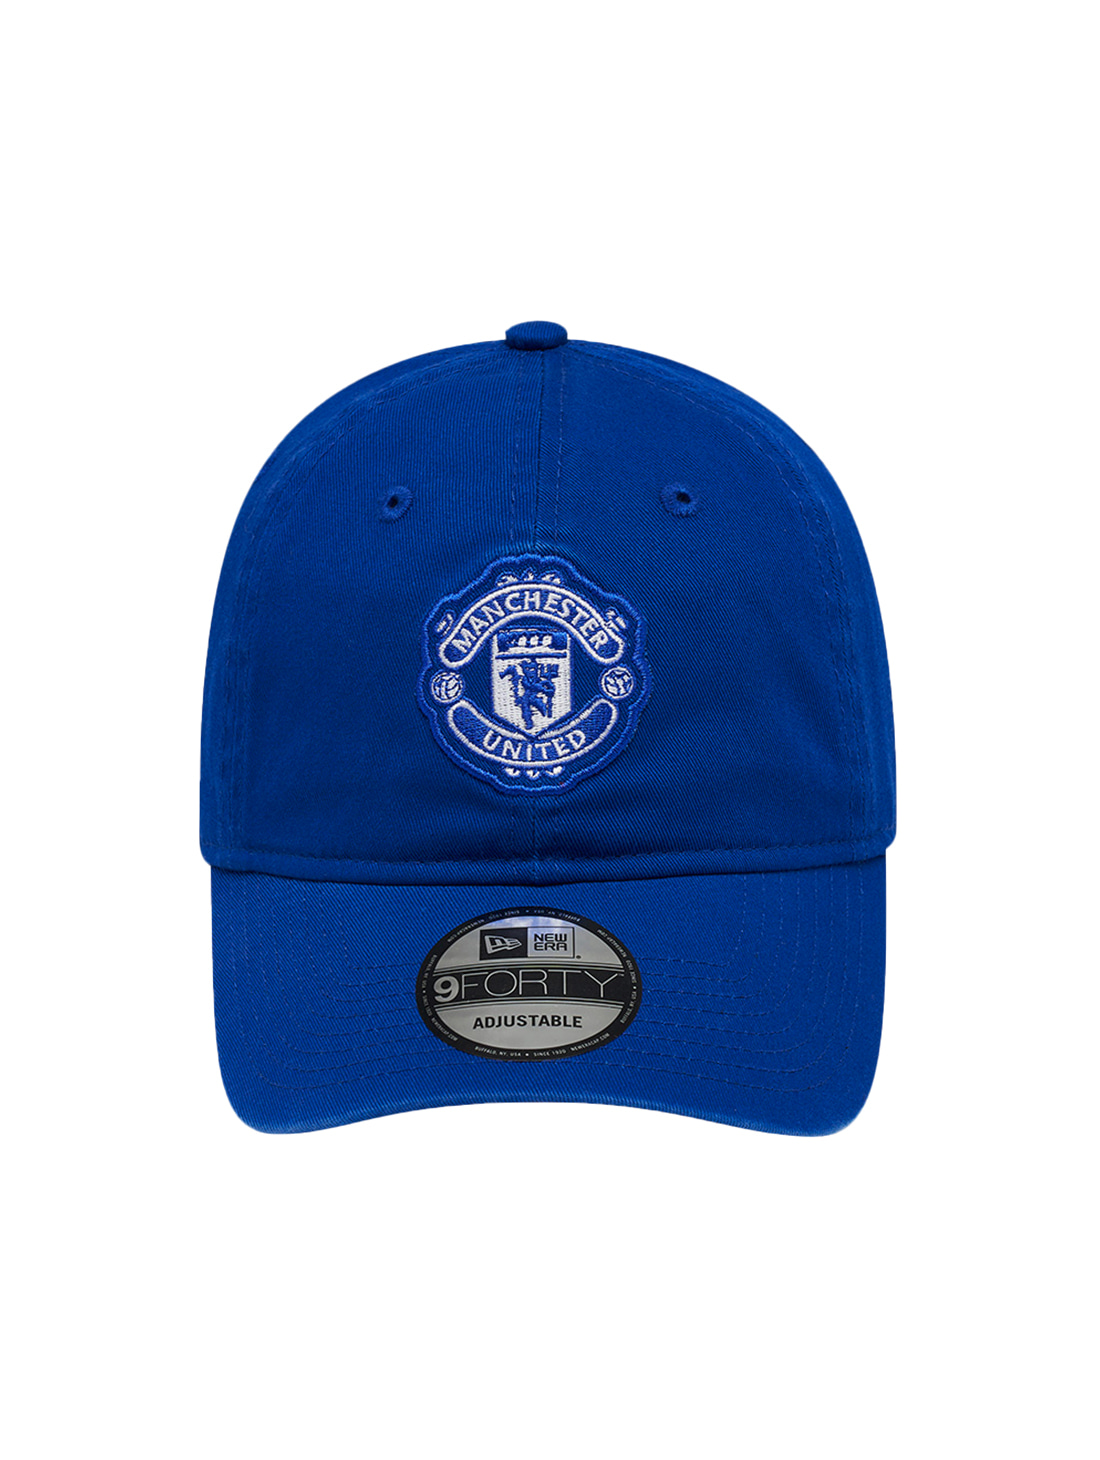 MAN U 940UNST BALL CAP - BLUE